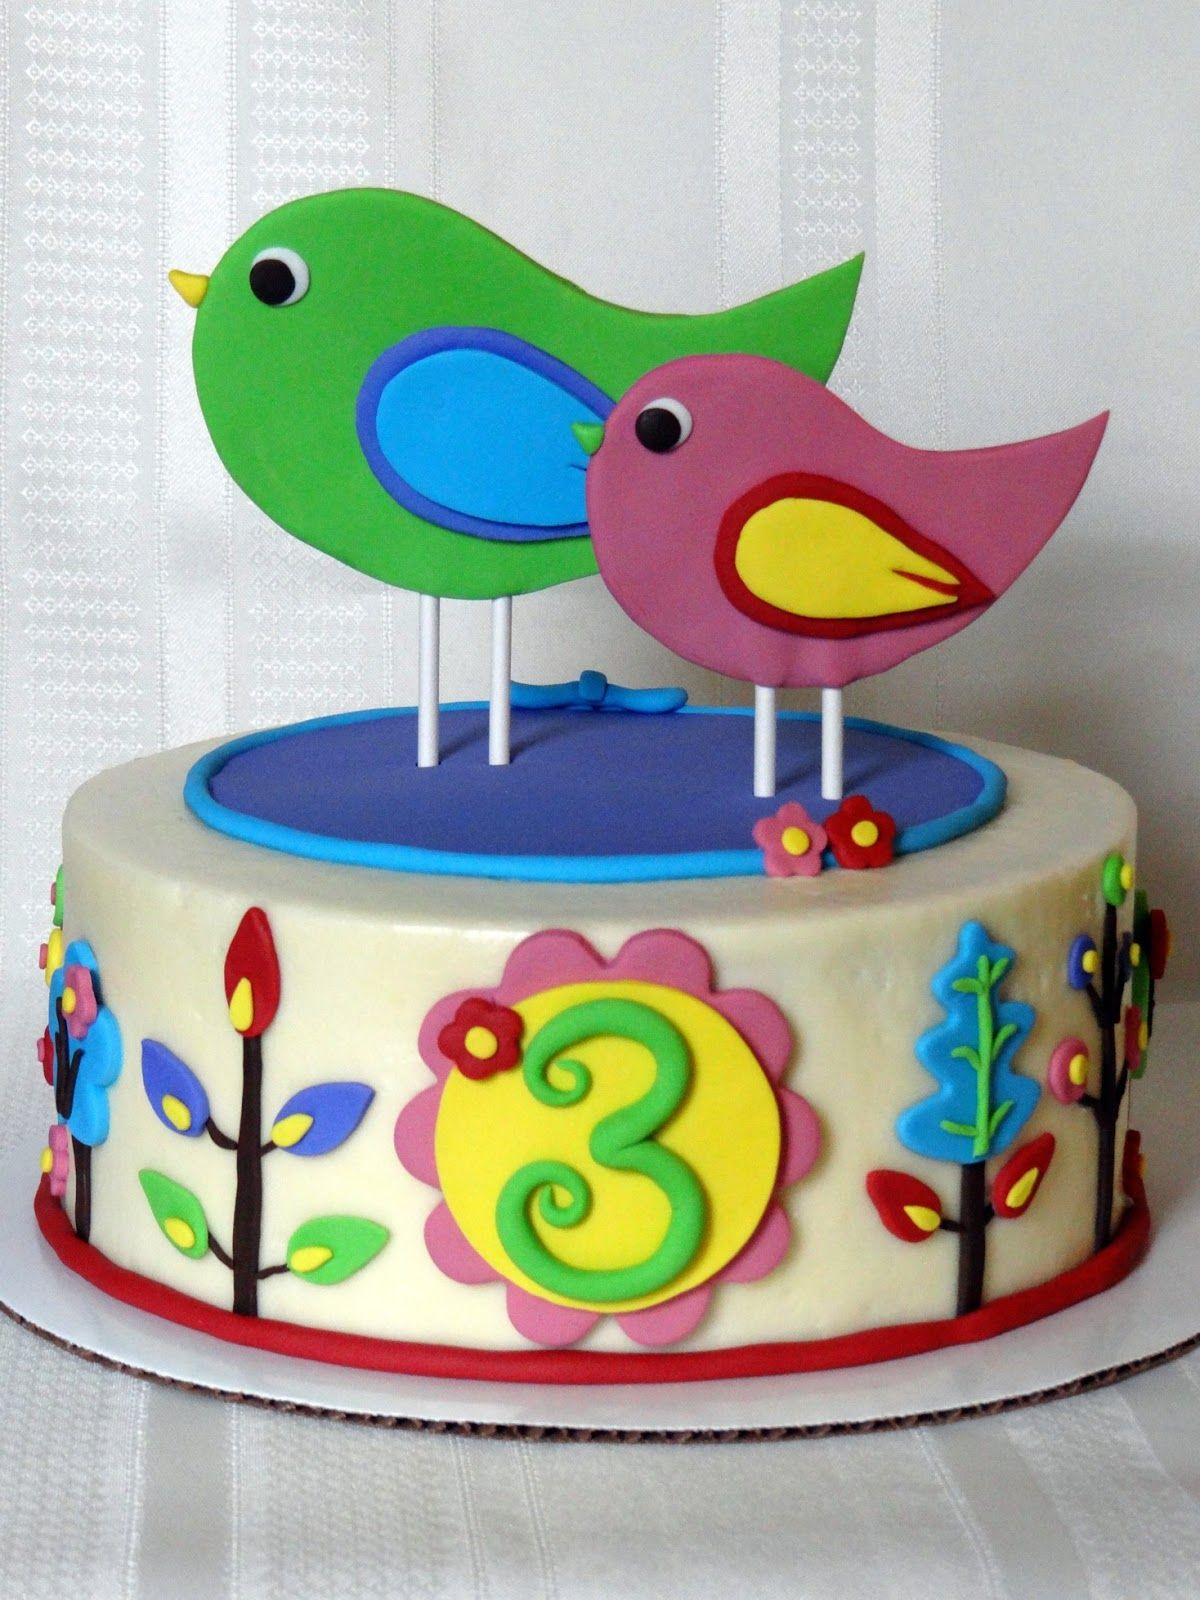 best birthday cakes for 3 year old girl Google Search 3rd bday